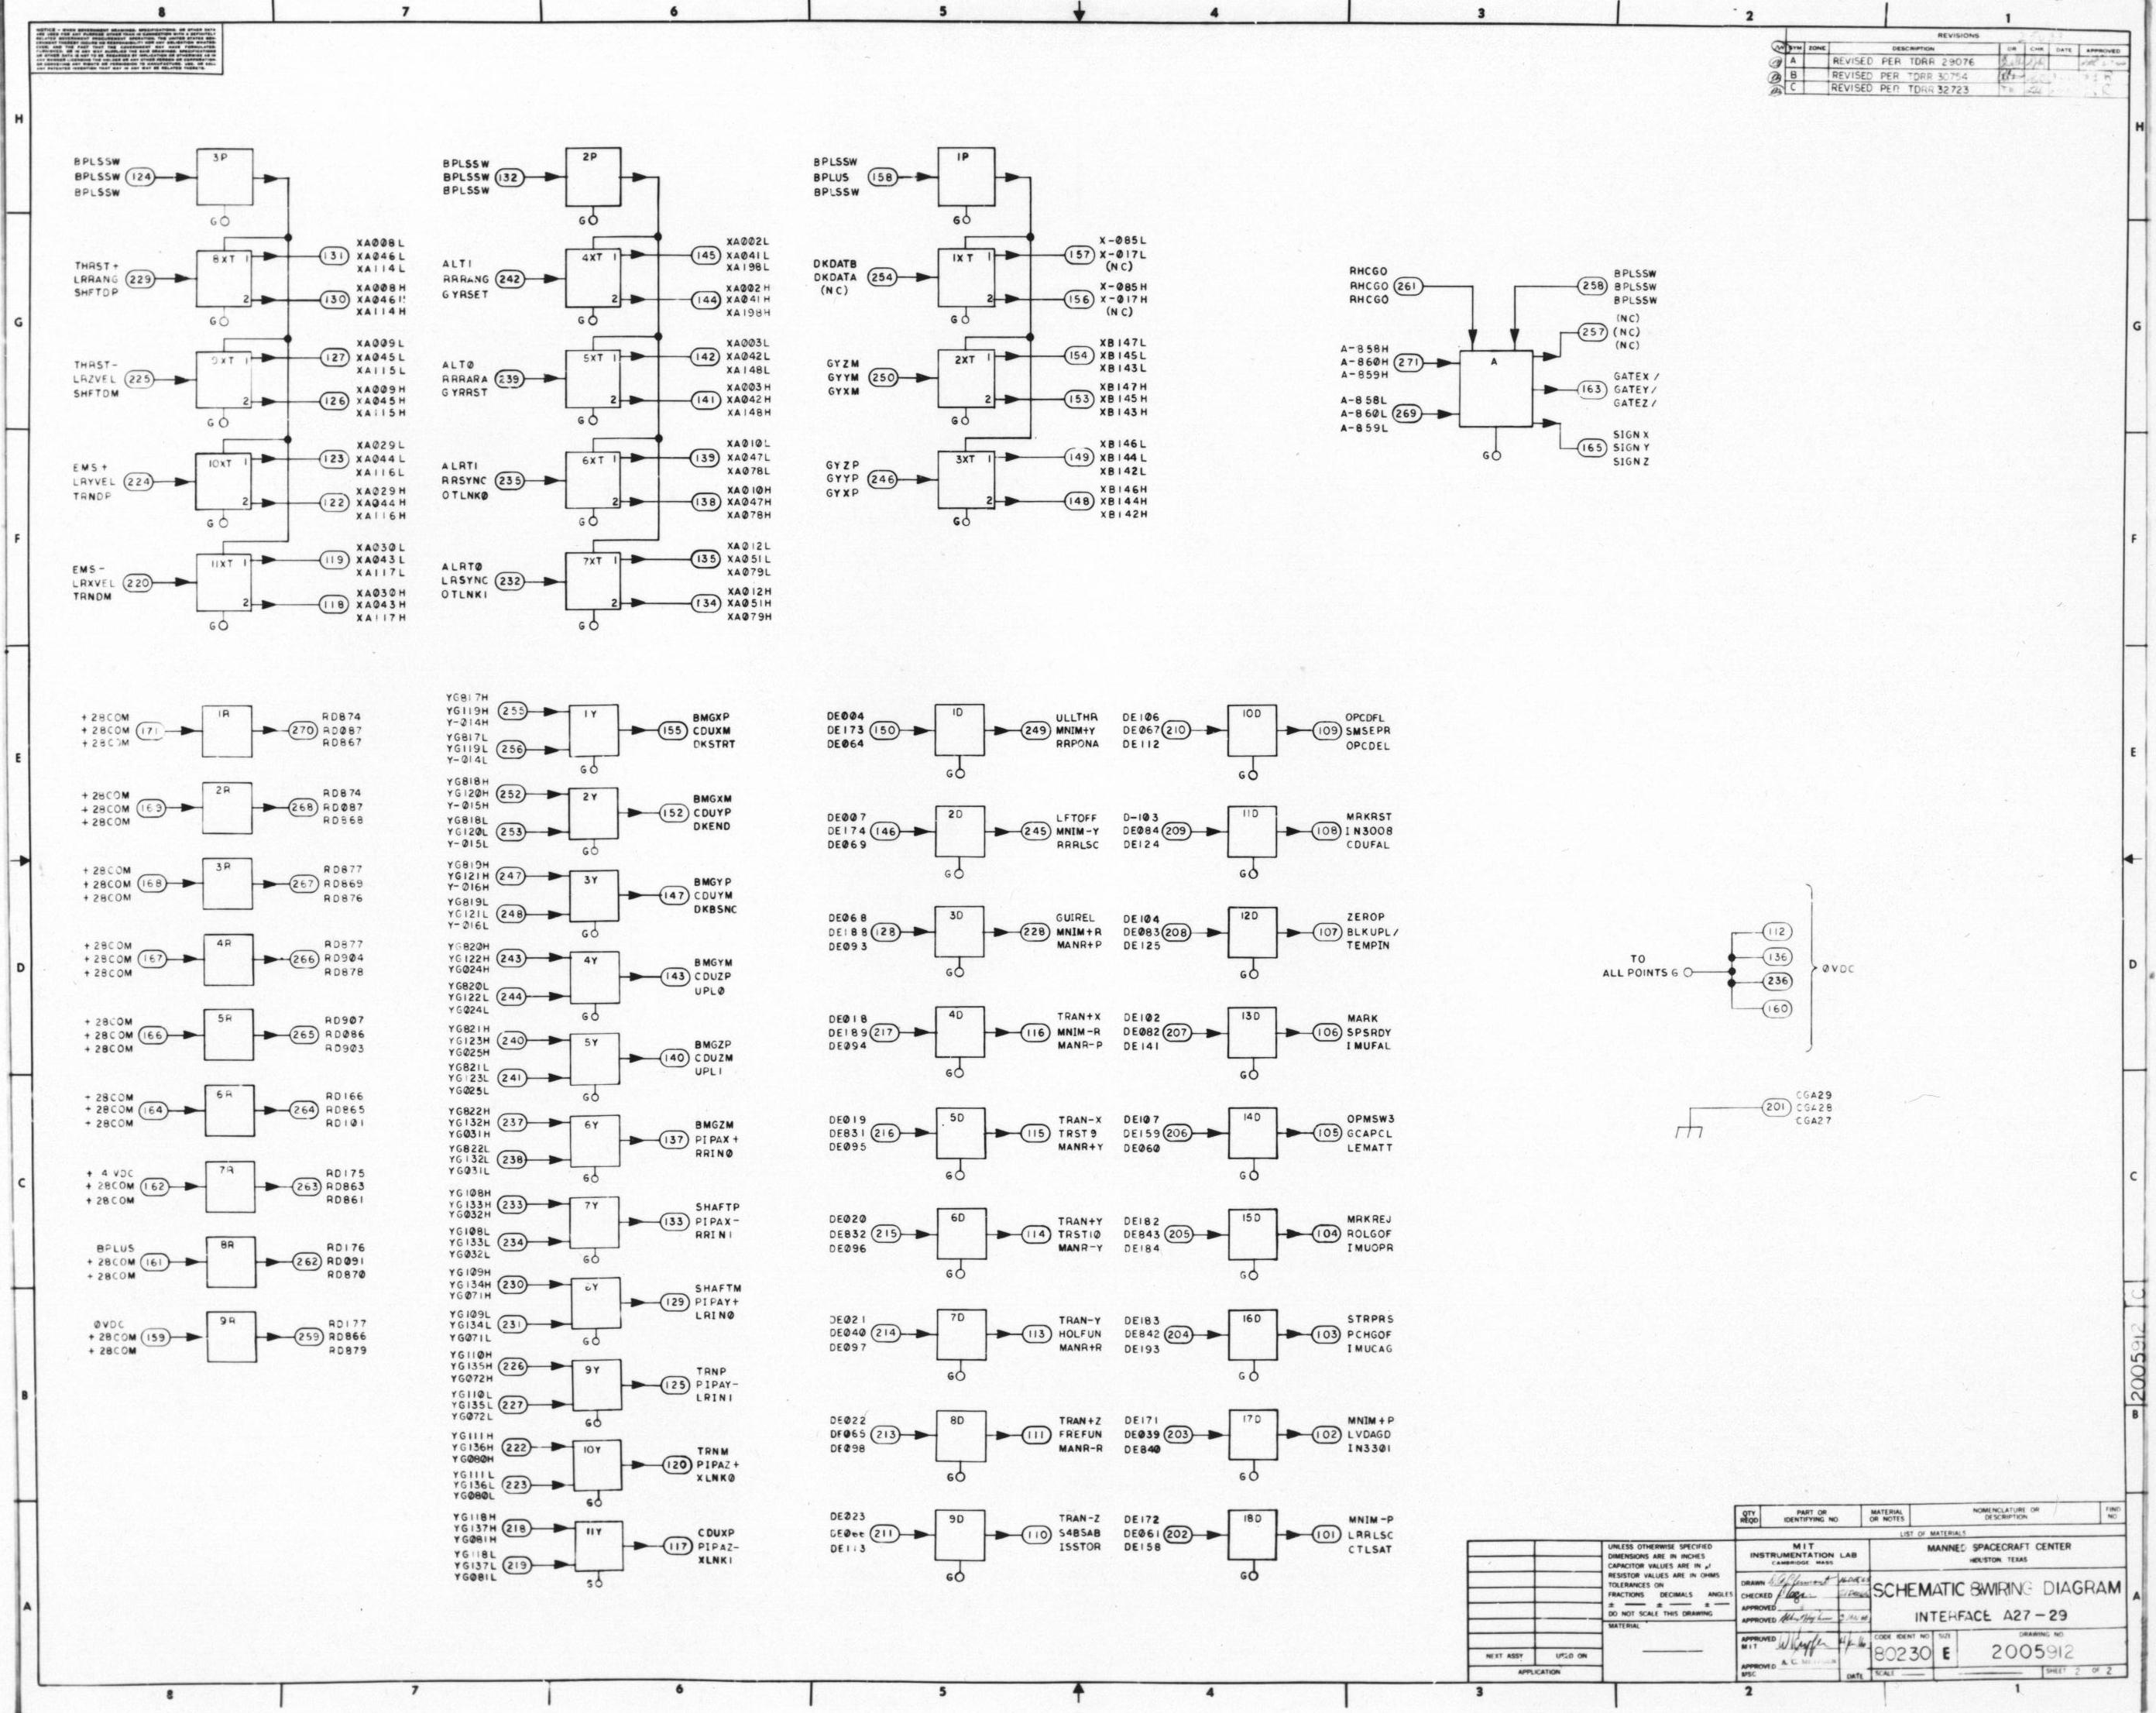 Apollo Guidance Computer Agc Schematics The Drawing No